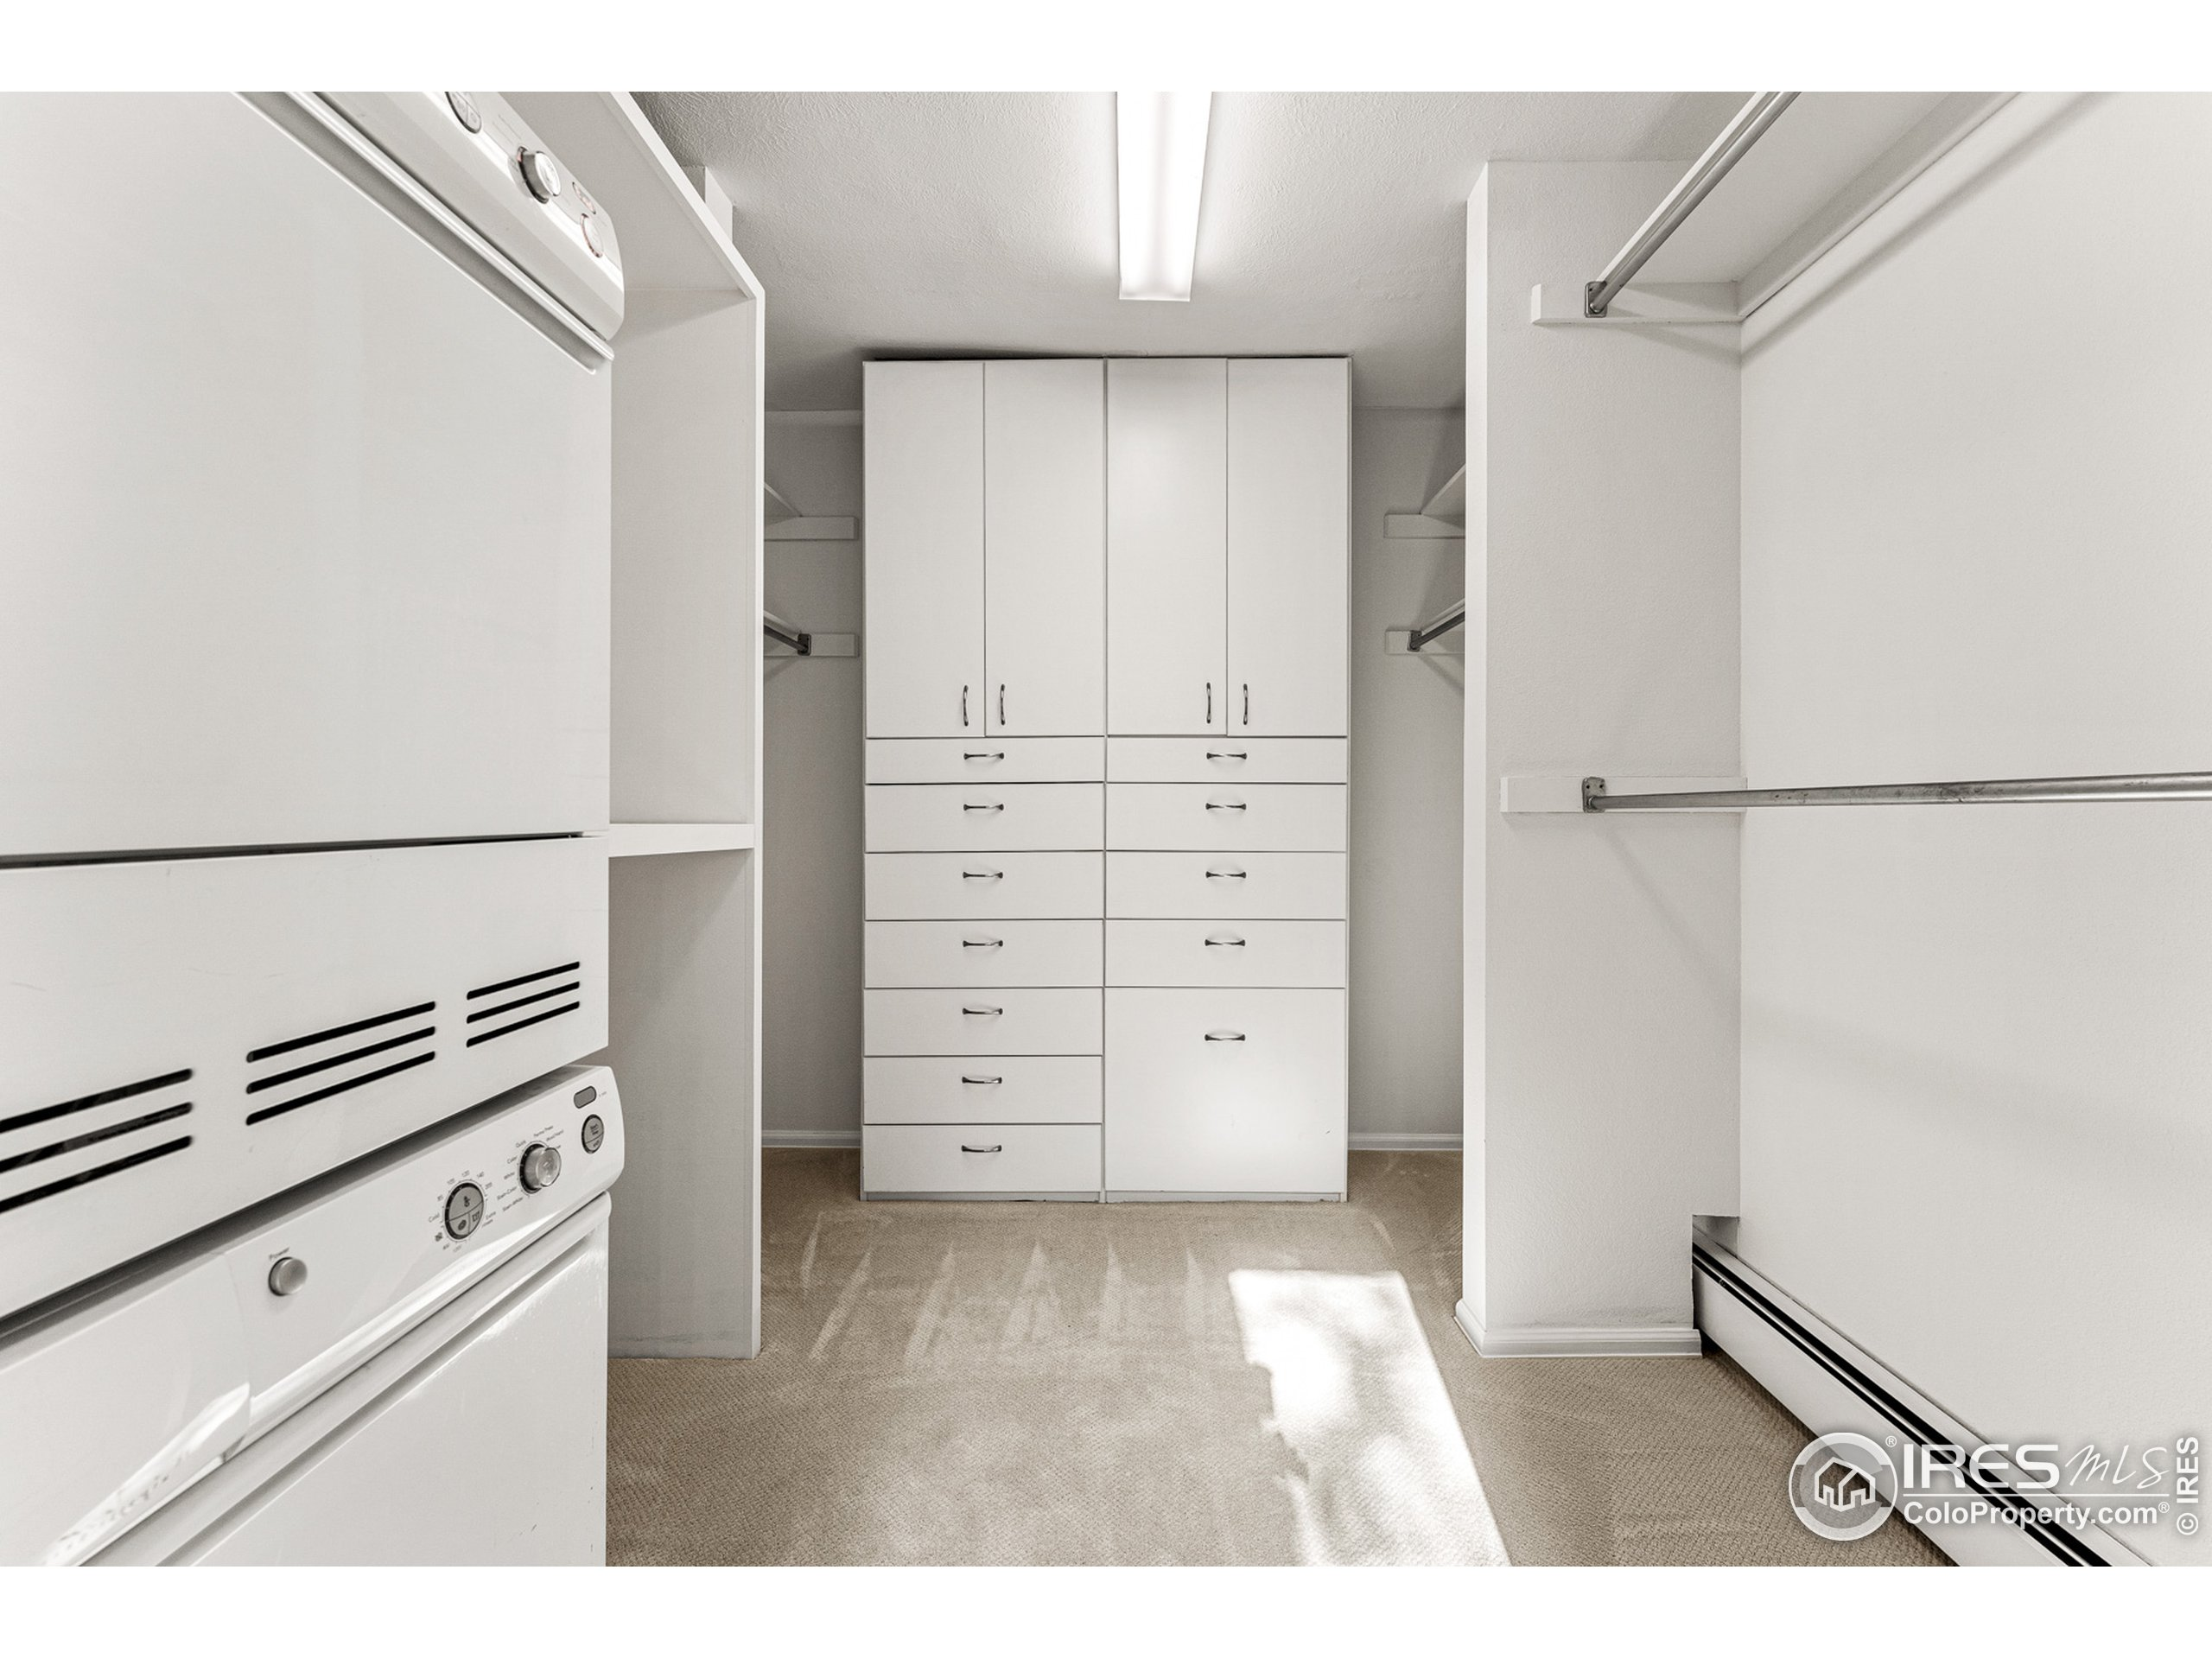 Primary Suite walk-in closet with built-in drawers. Includes an additonal Asko washer/dryer (main washer and dryer located on lower level)